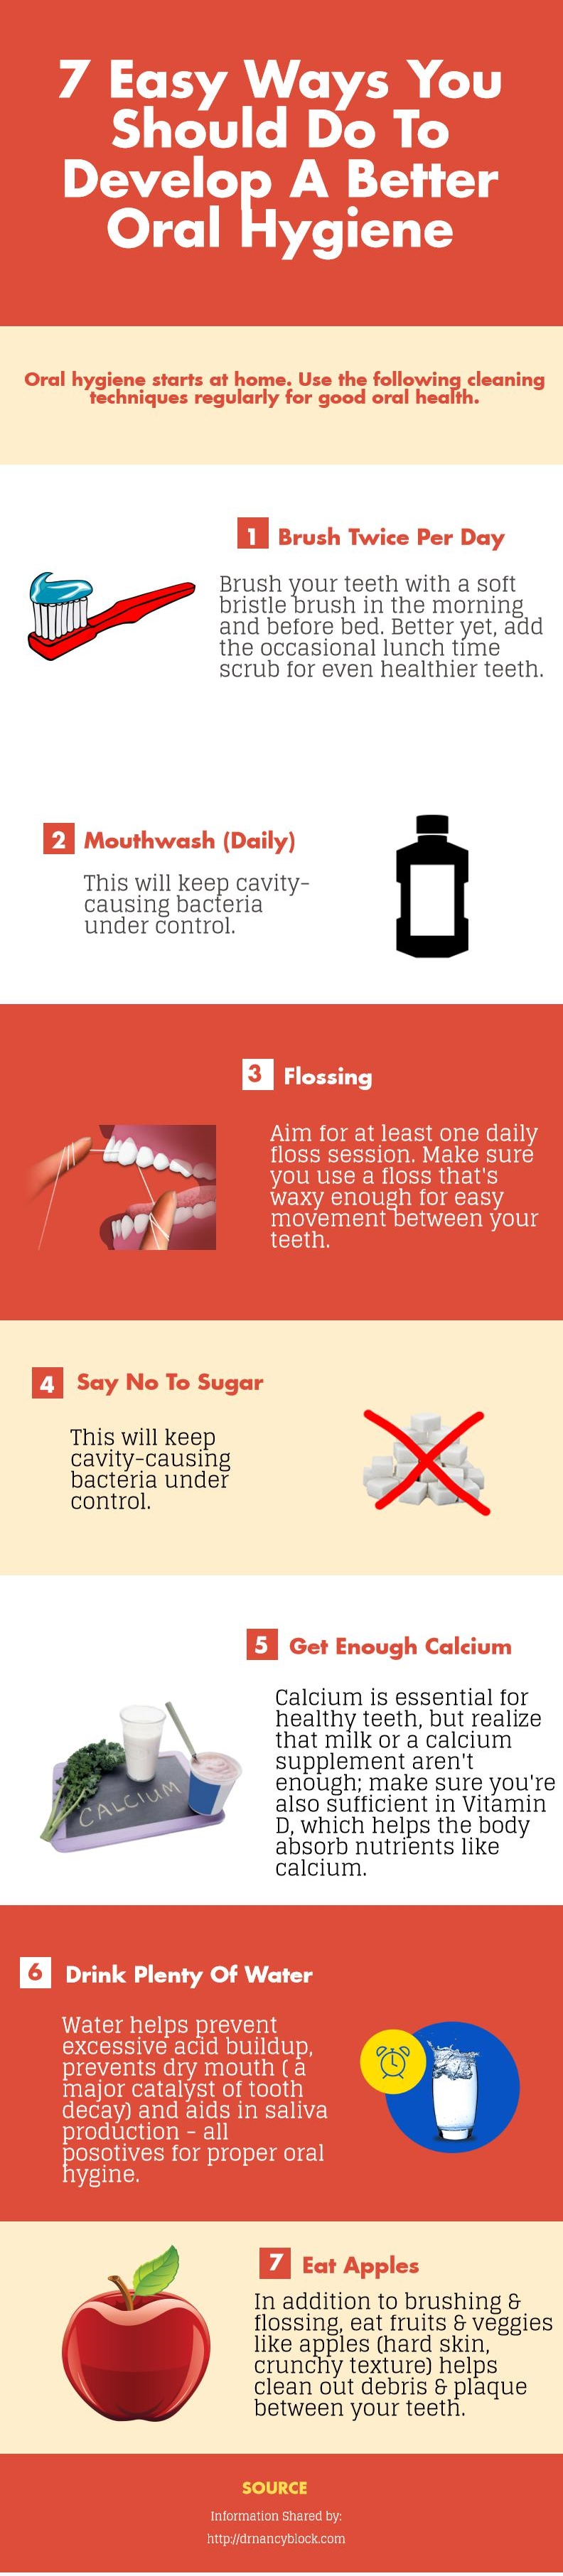 7 Easy Ways To Maintain A Good Oral Hygiene Best oral